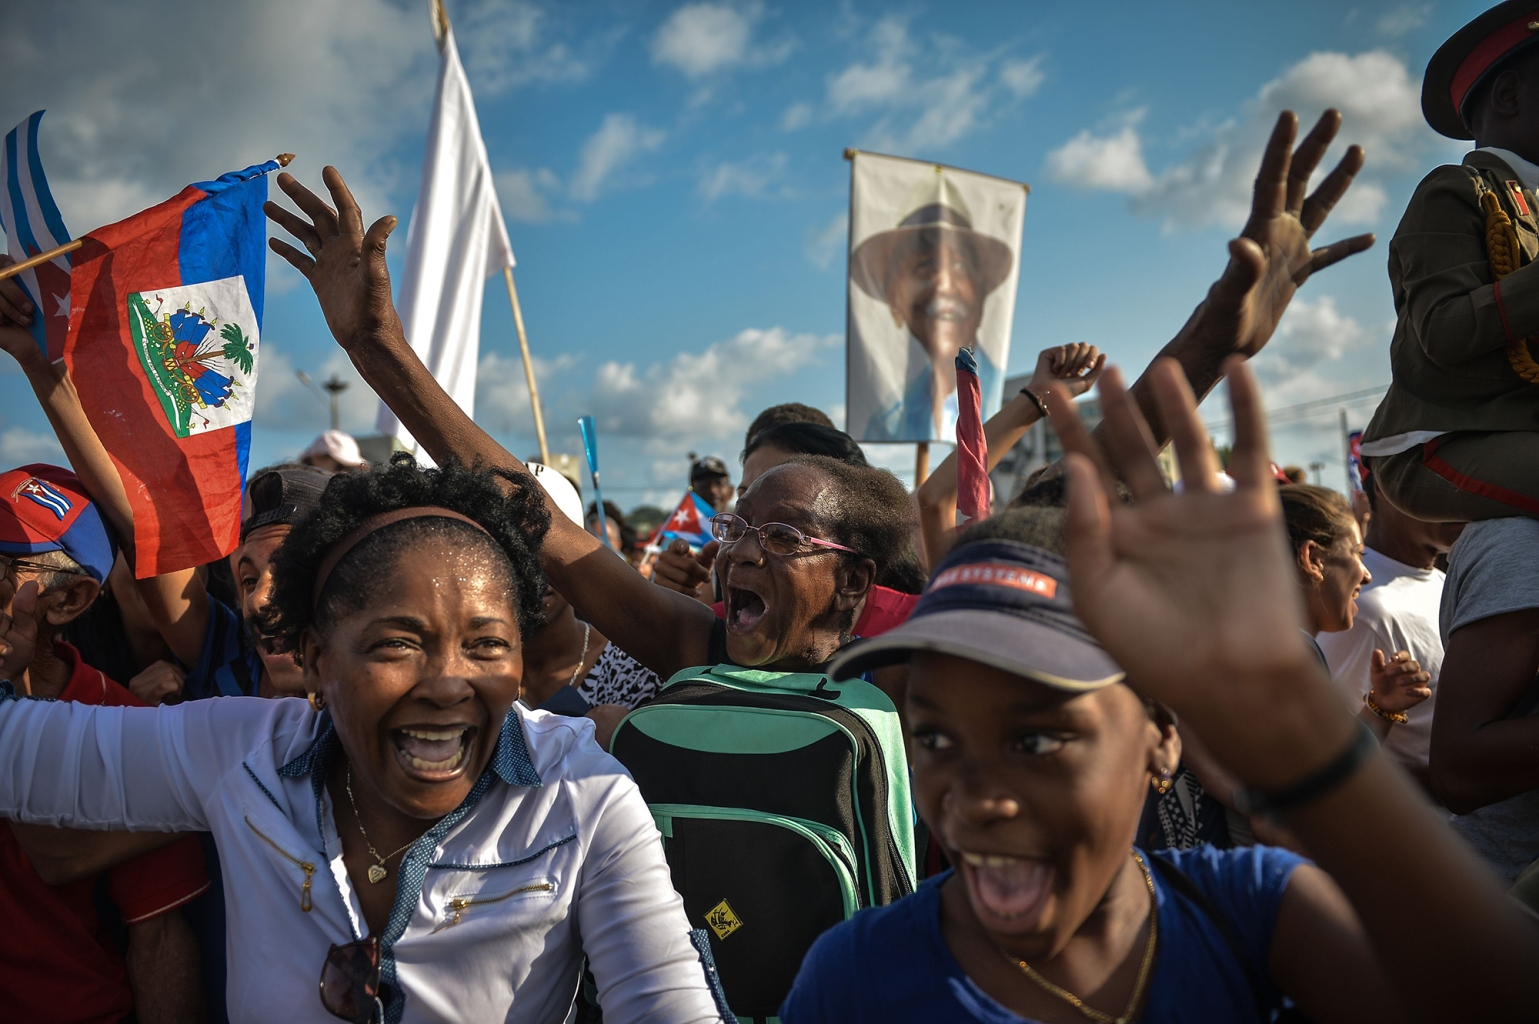 Cubans cheer during the May Day rally at Revolution Square in Havana on May 1. YAMIL LAGE/AFP/Getty Images